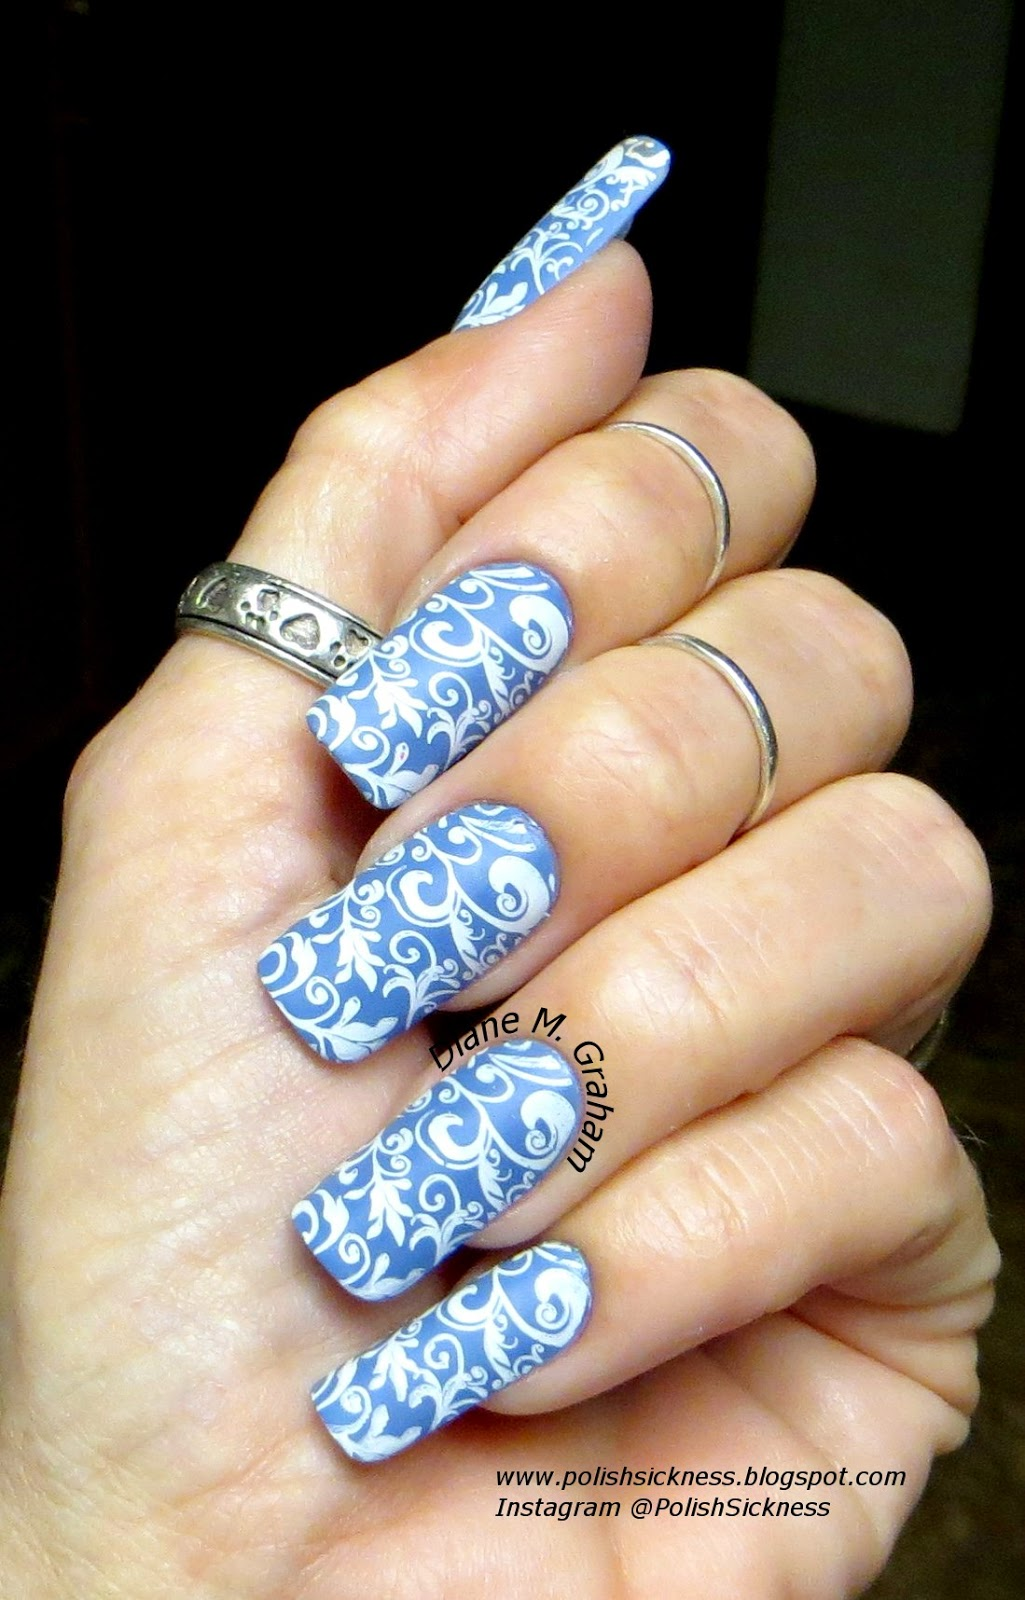 China Glaze Secret  Peri-Wink-Le, Mdu white, Sally Hansen Big Matte topcoat, Uber Chic UC1-02 stamp